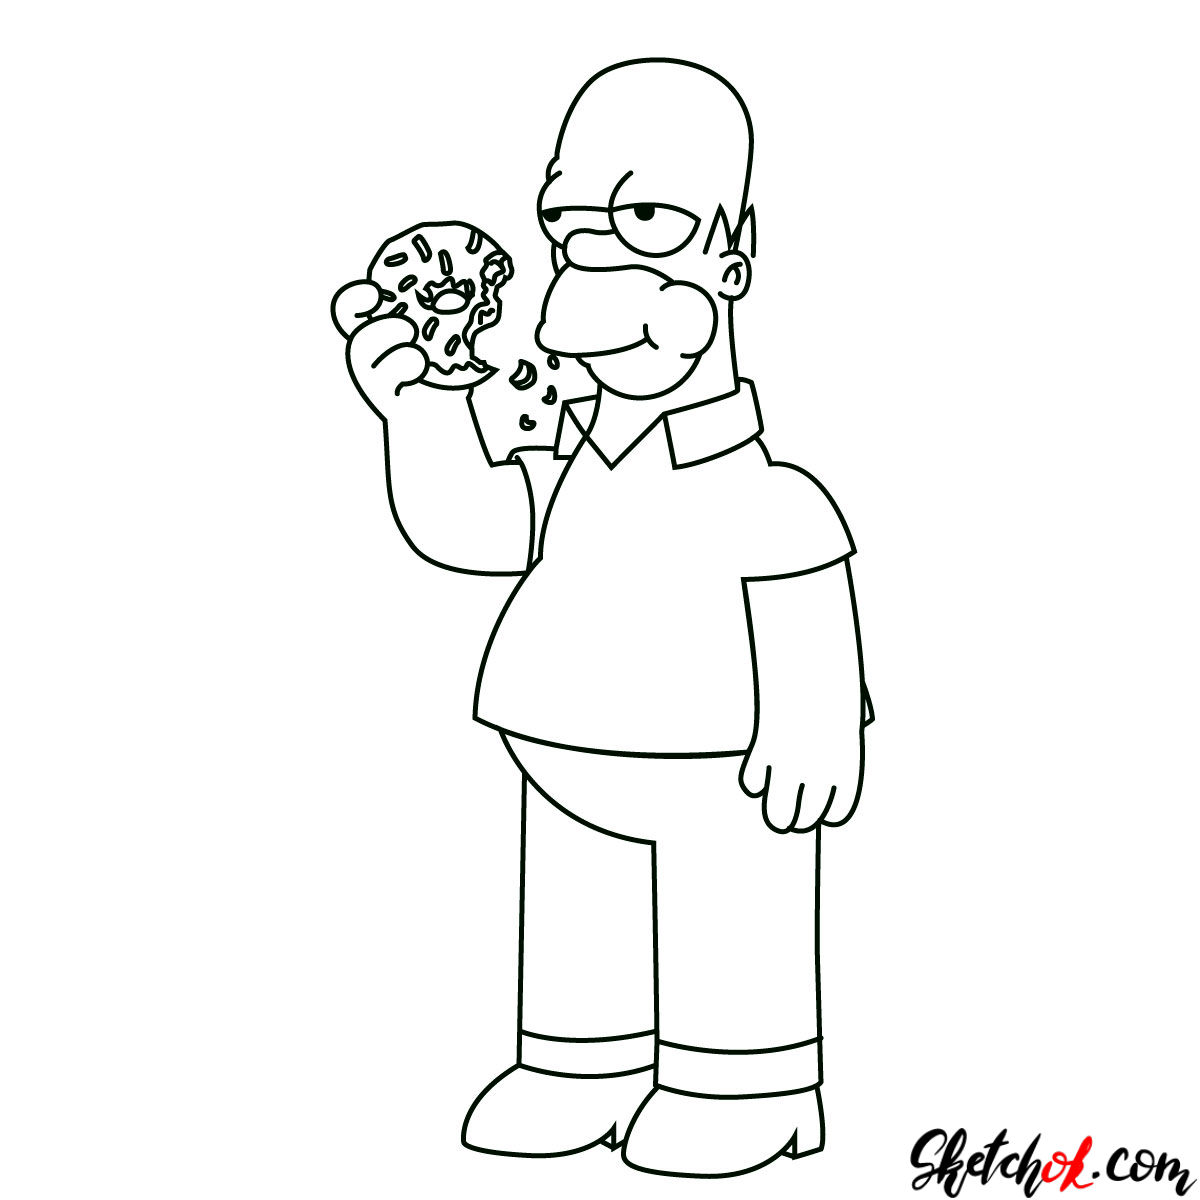 How To Draw Homer Simpson Eating A Donut Neo Coloring